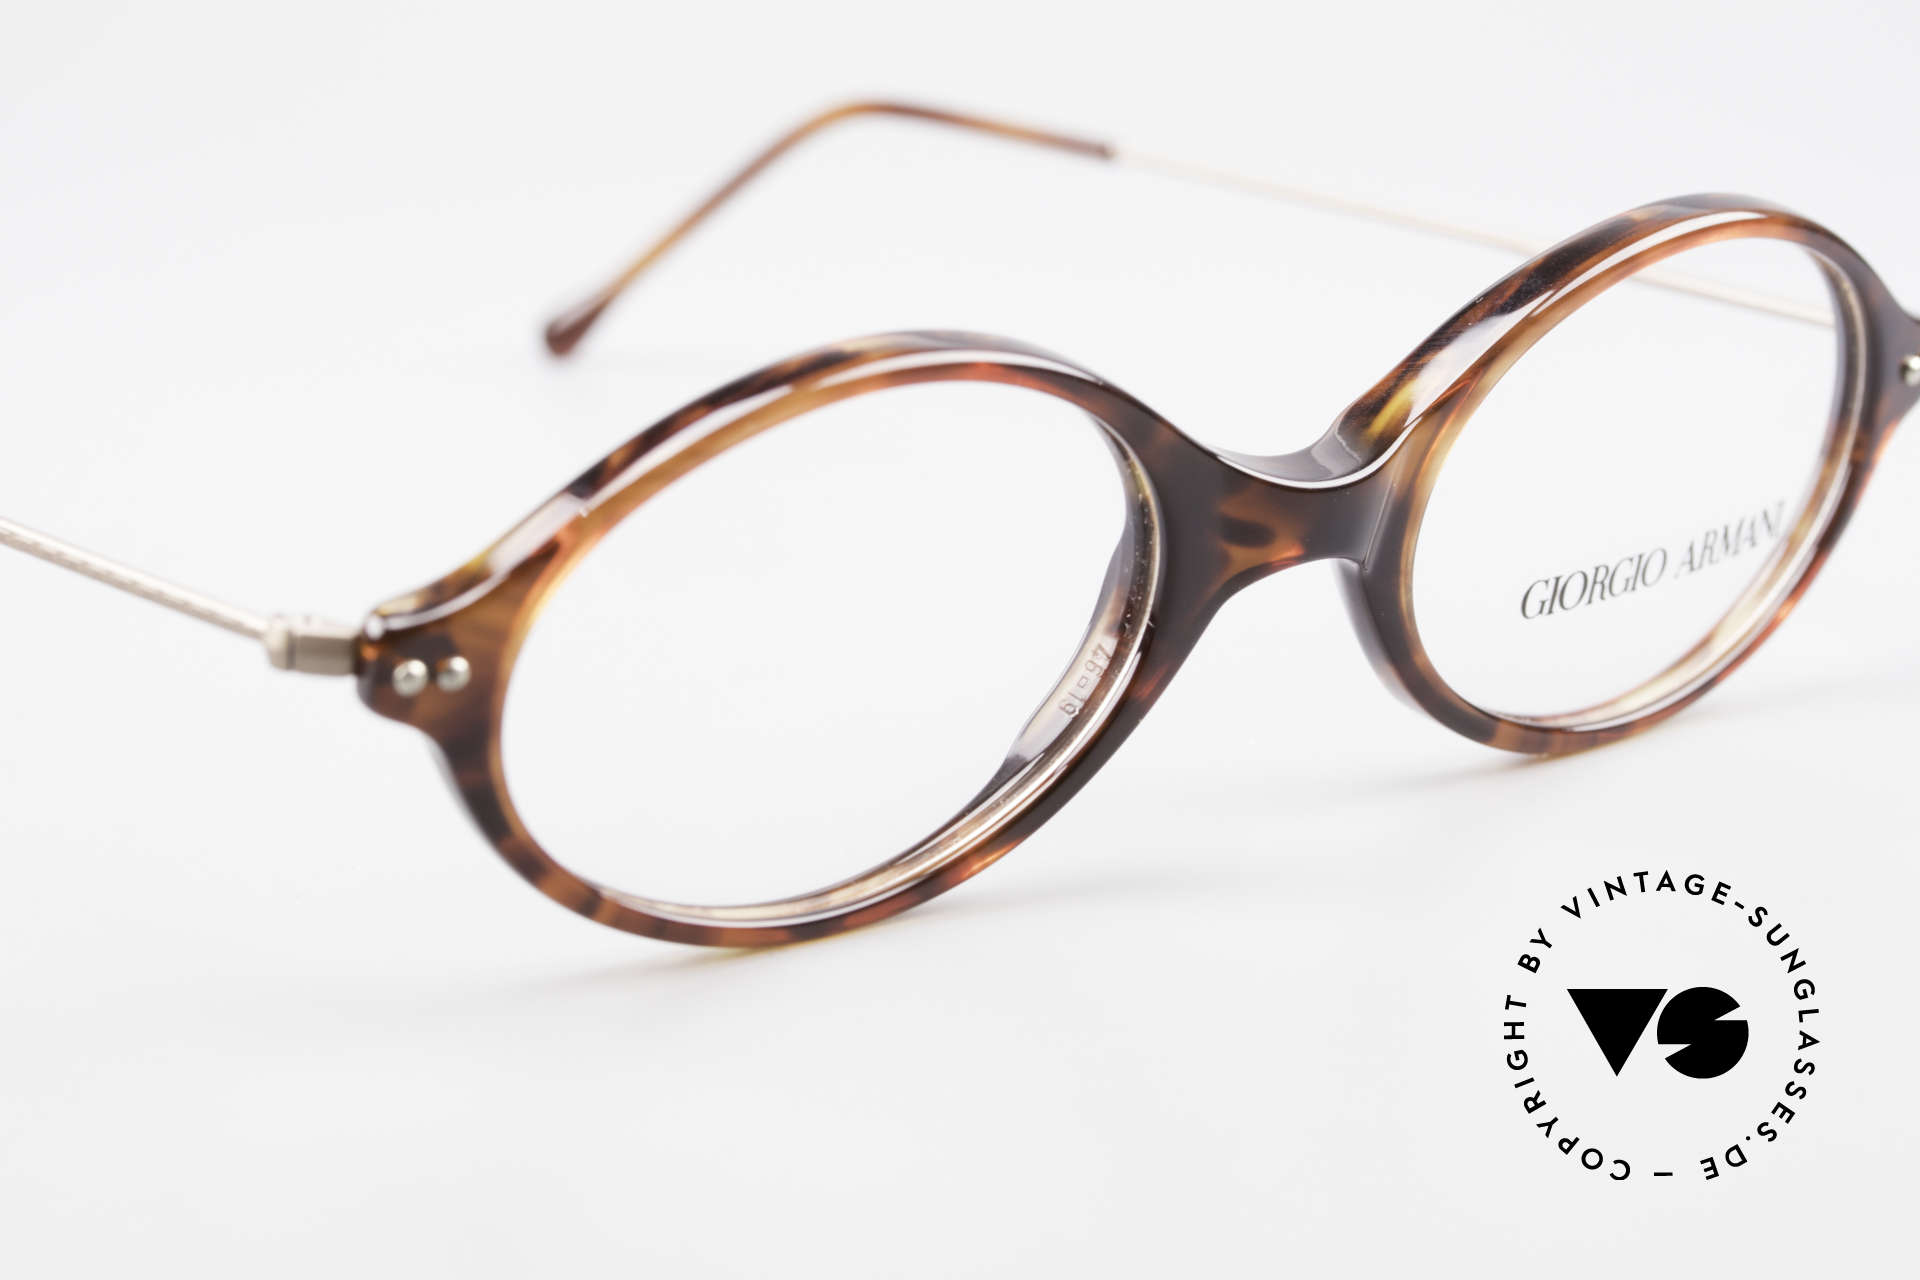 Giorgio Armani 378 90's Unisex Eyeglasses Oval, unworn Giorgio Armani original from the mid. 90's, Made for Men and Women